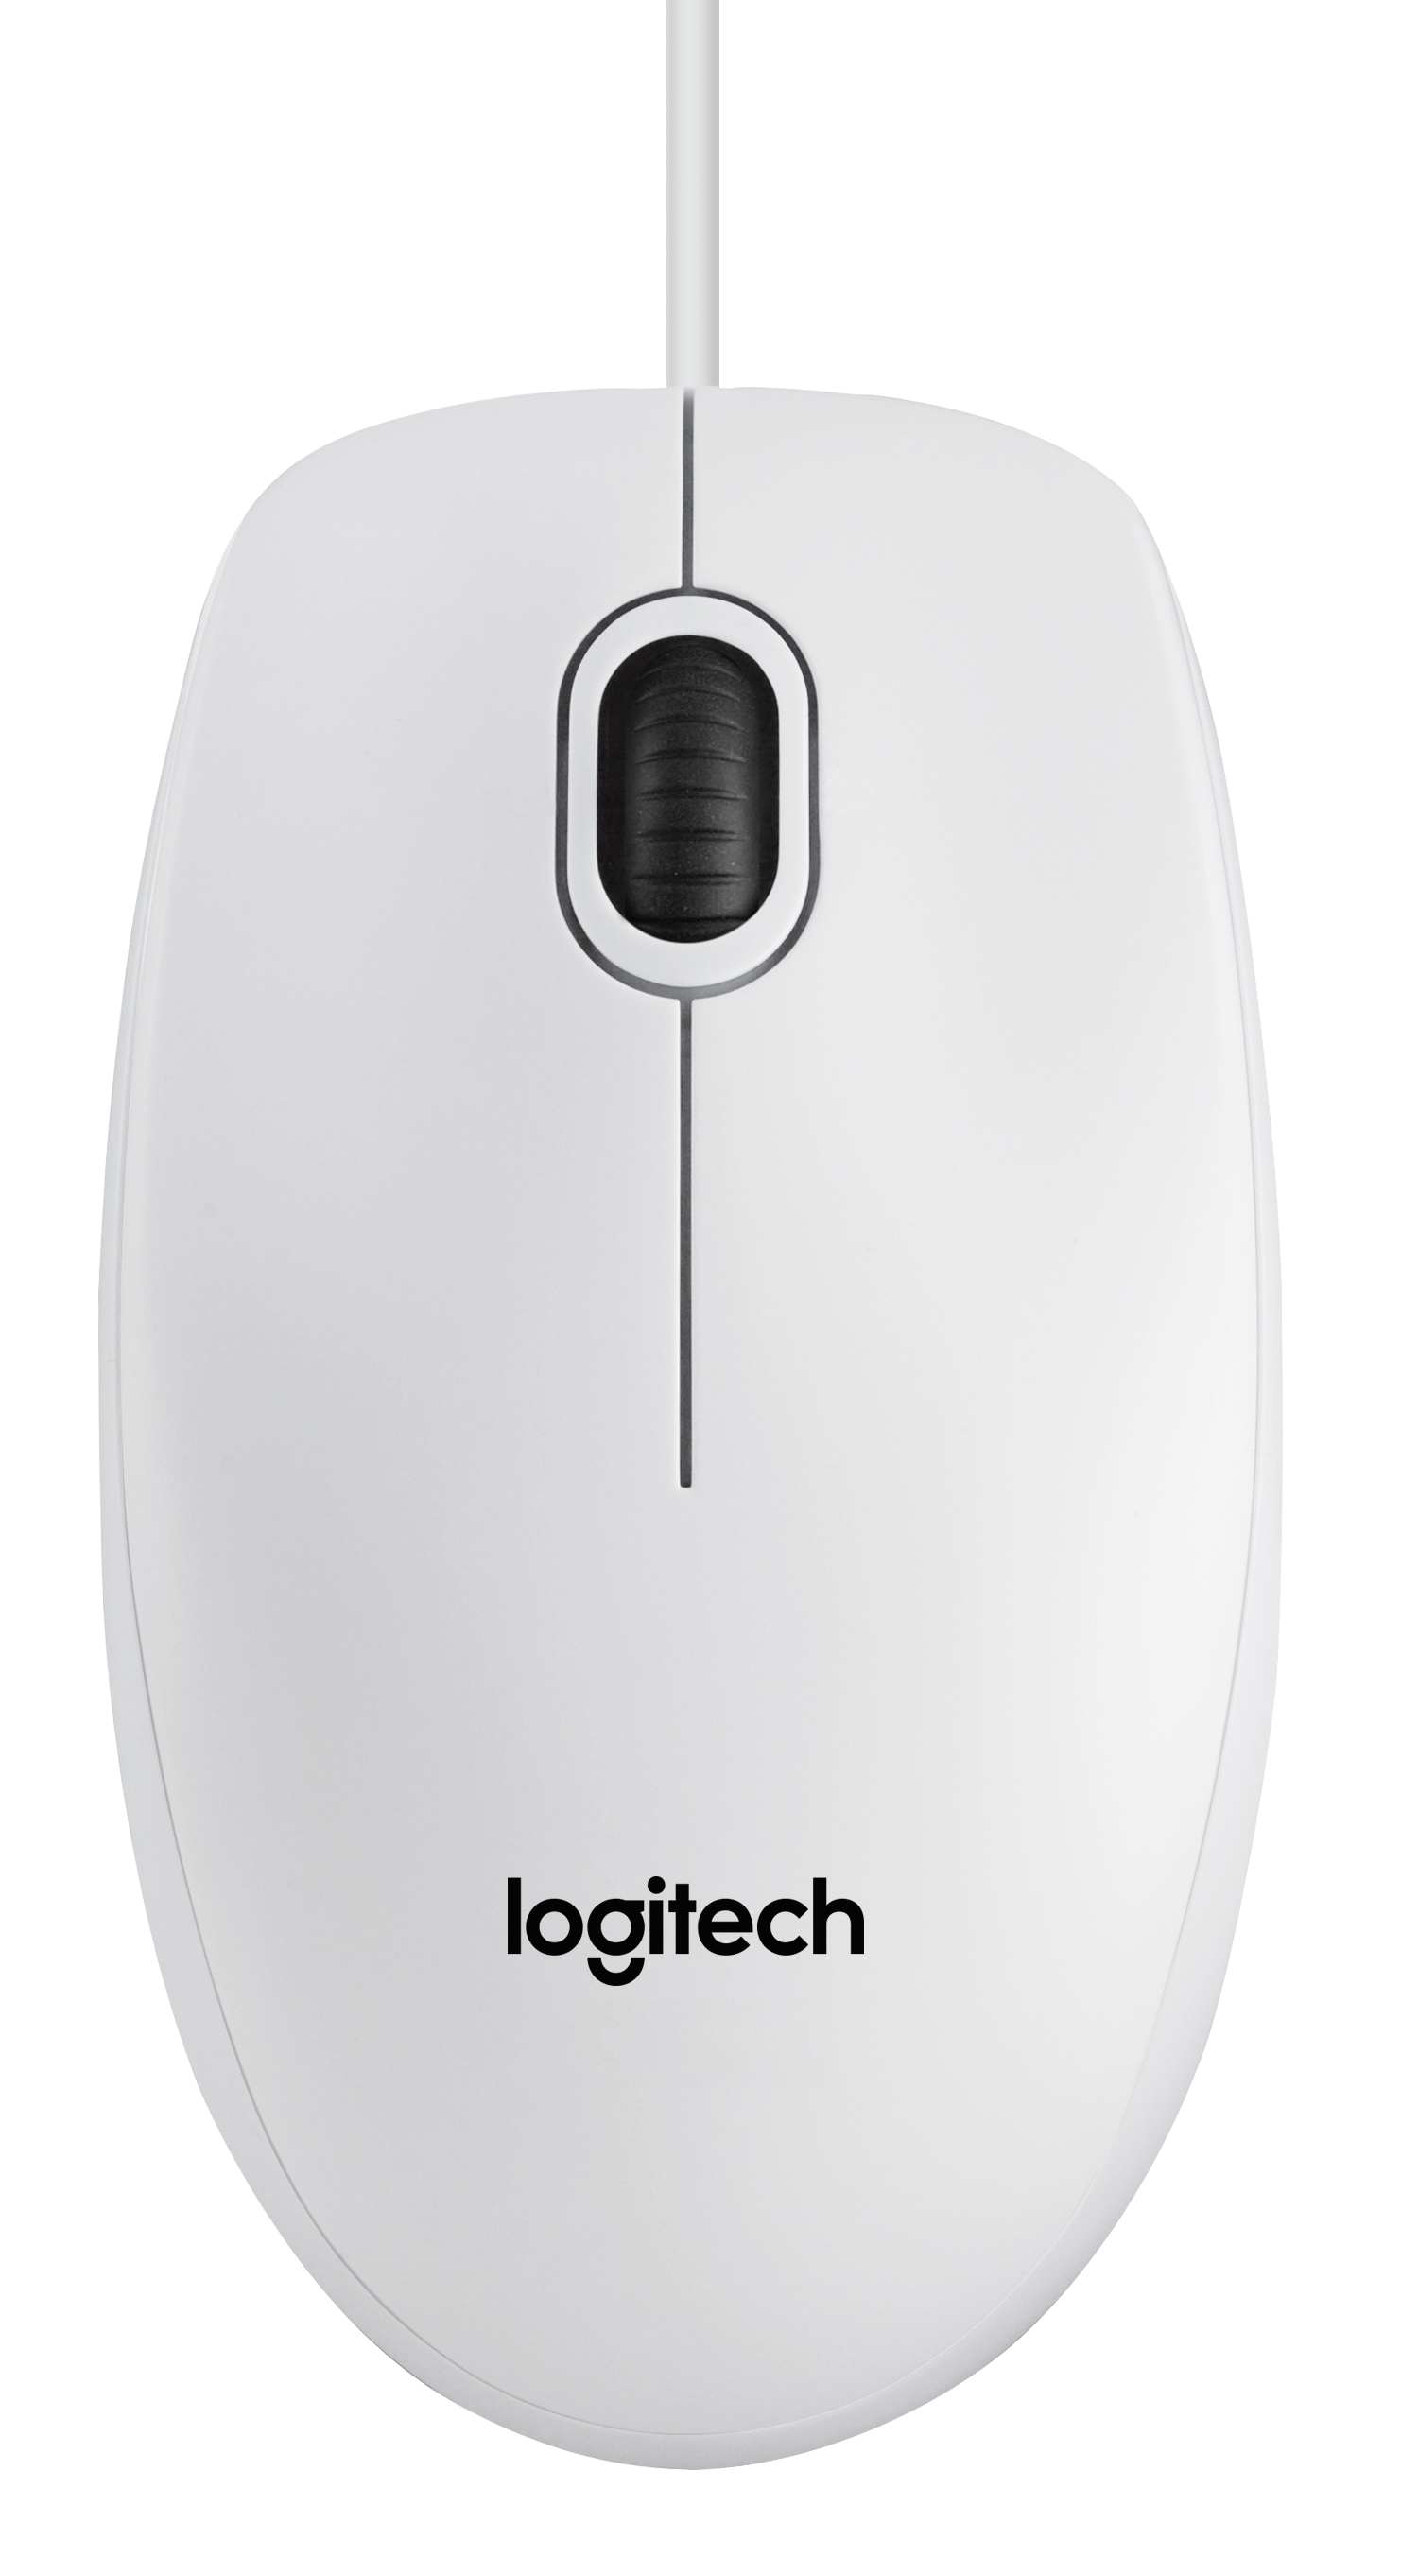 Logitech B100 optical USB white OEM